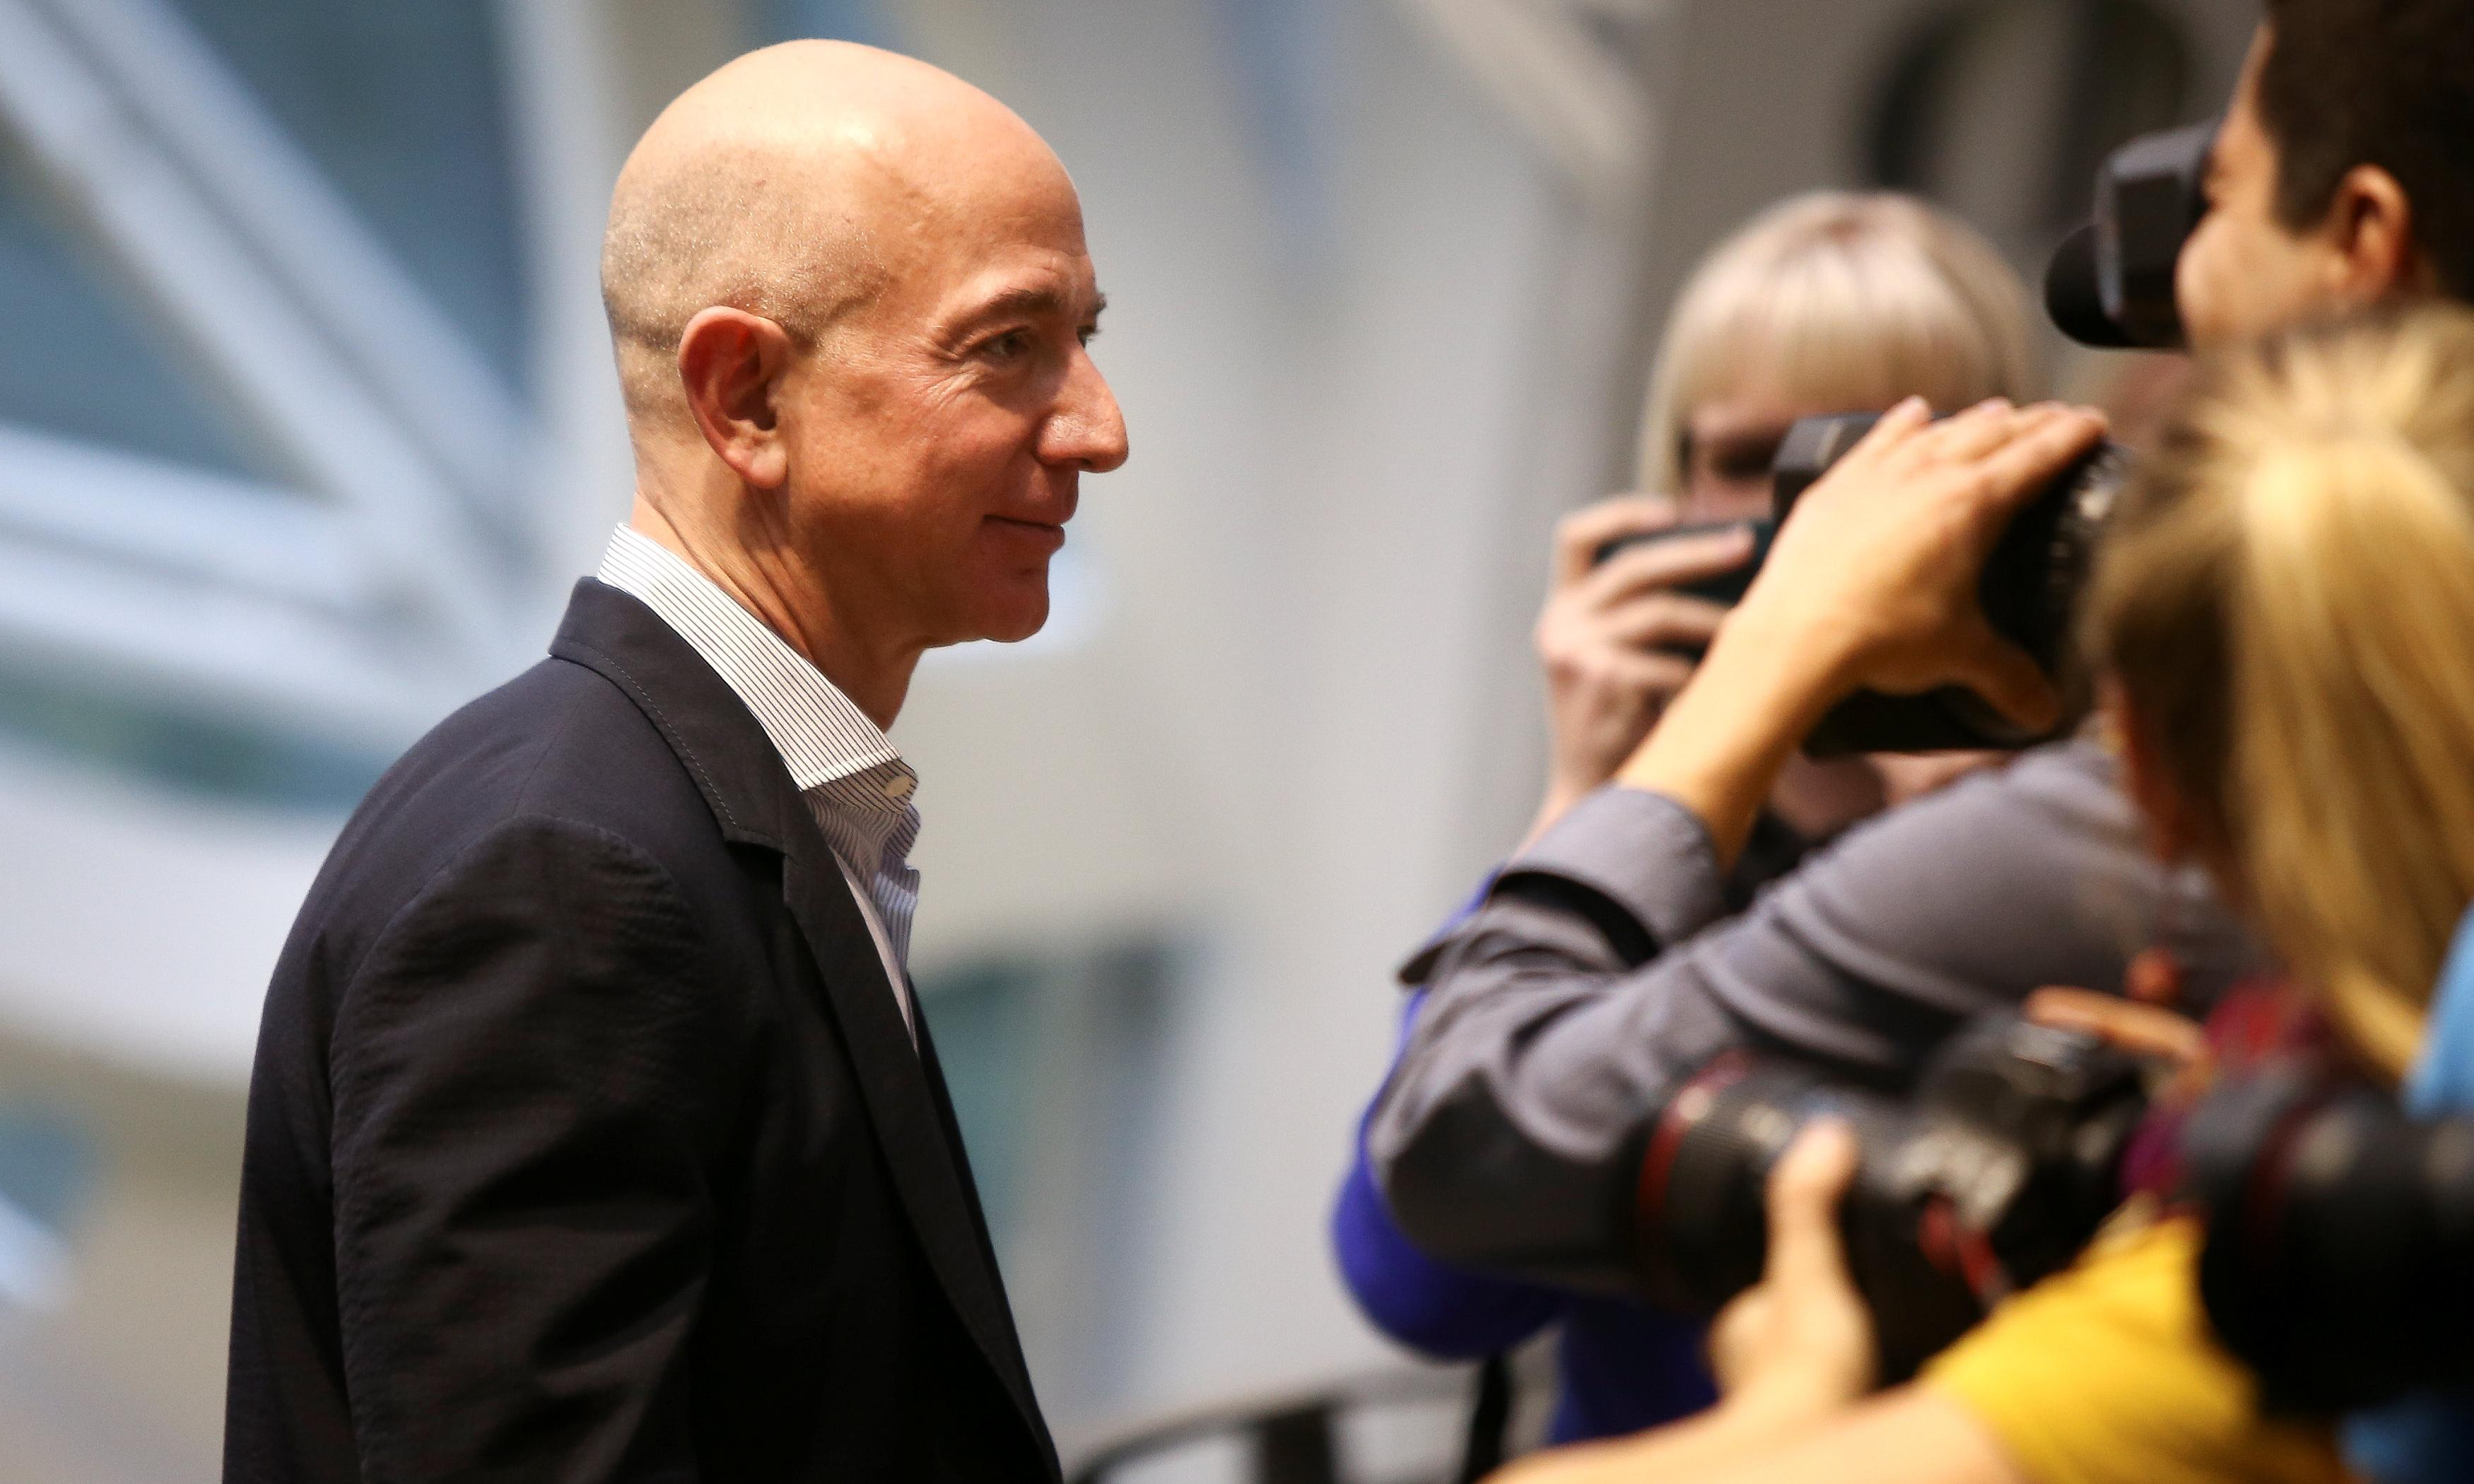 Jeff Bezos: the boy who wanted to colonise space